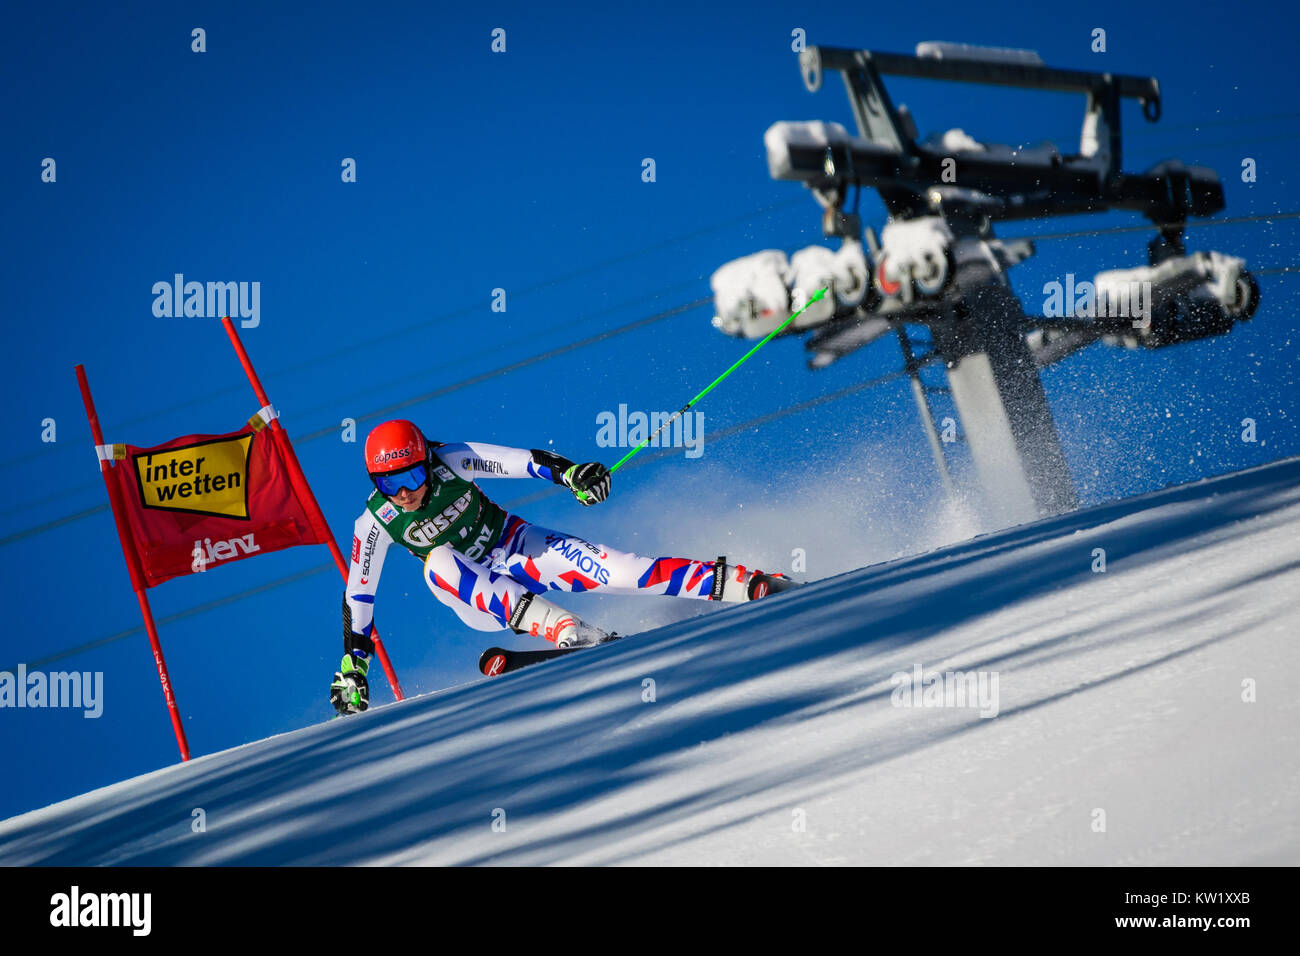 Lienz, Austria. 29th Dec, 2017. Petra Vlhova of Slovakia competes during the FIS World Cup Ladies Giant Slalom race - Stock Image